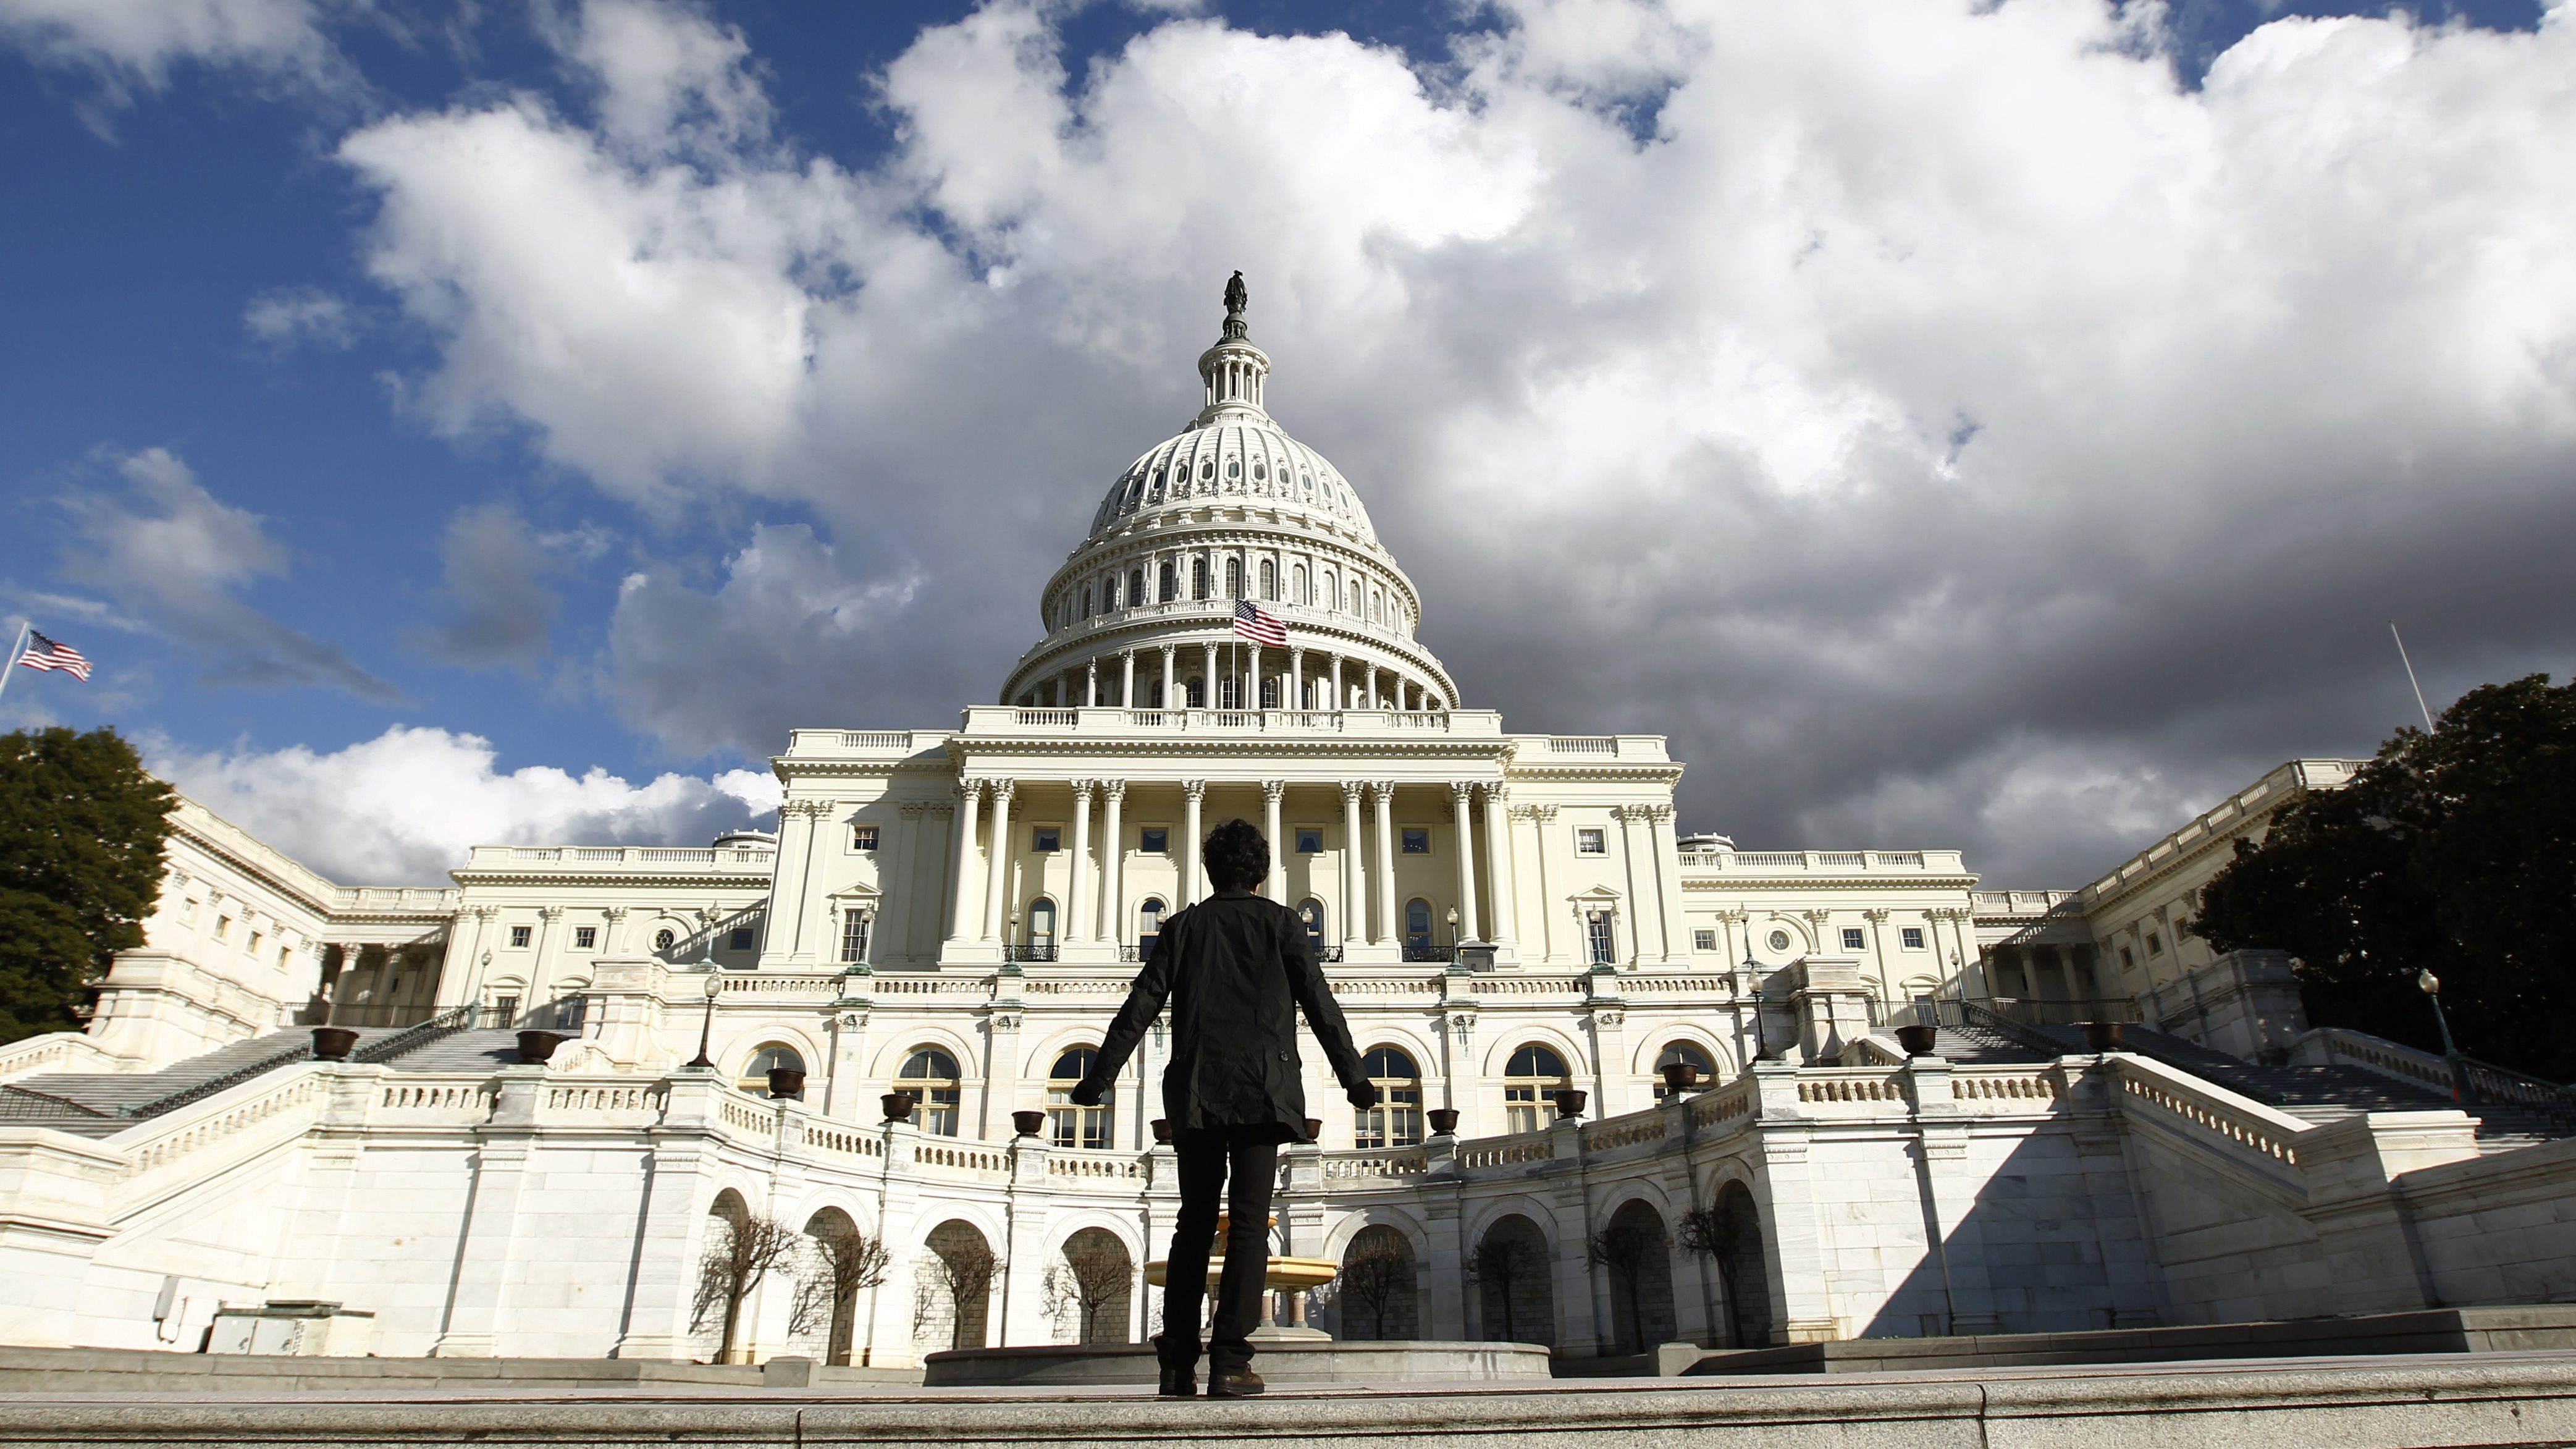 A tourist gazes up towards the dome of the U.S. Capitol in Washington January 25, 2010.  On Wednesday, U.S. President Barack Obama will deliver his first State of the Union speech in the House Chamber of the Capitol.